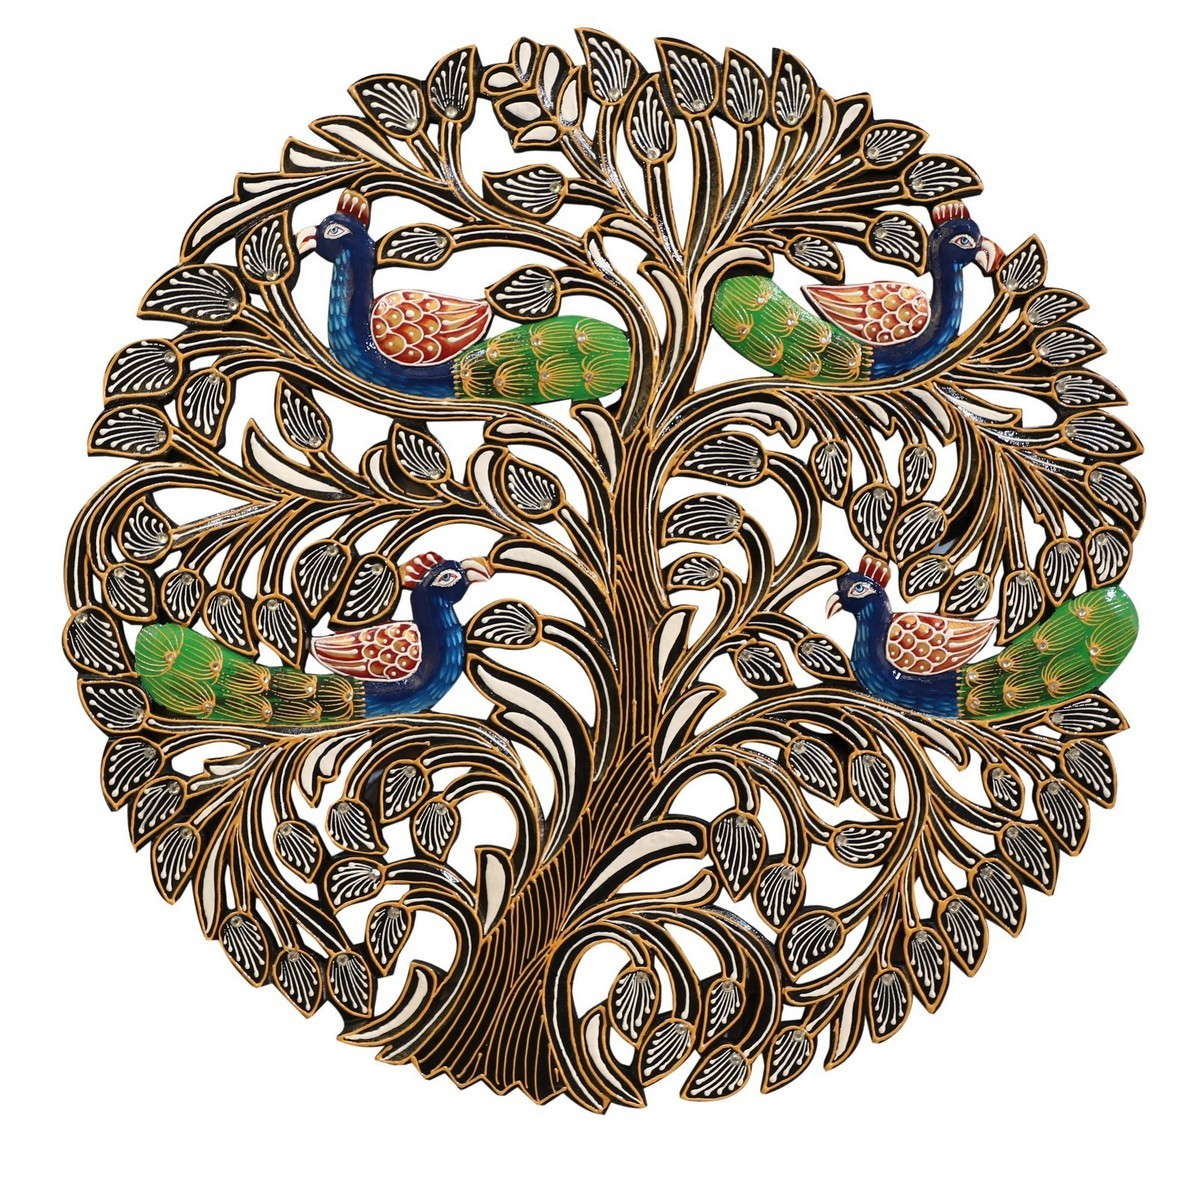 Gascon Hand Painted Wooden Peacock Wall Art, Round, 61cm